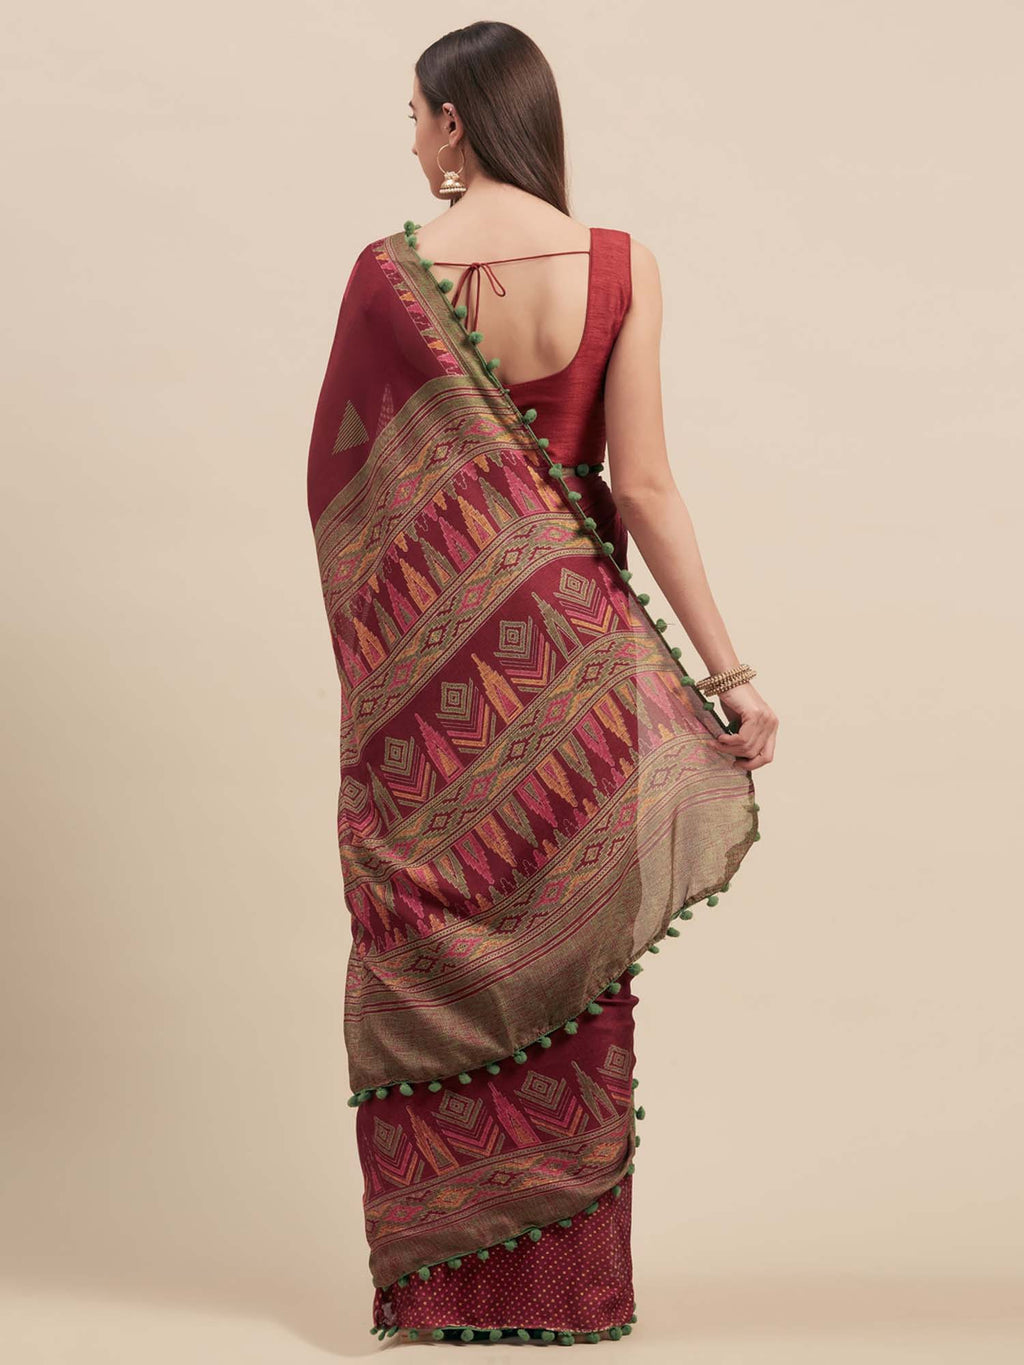 Magenta Jute Cotton Printed Saree With Pom Pom Lace - Riviera Closet